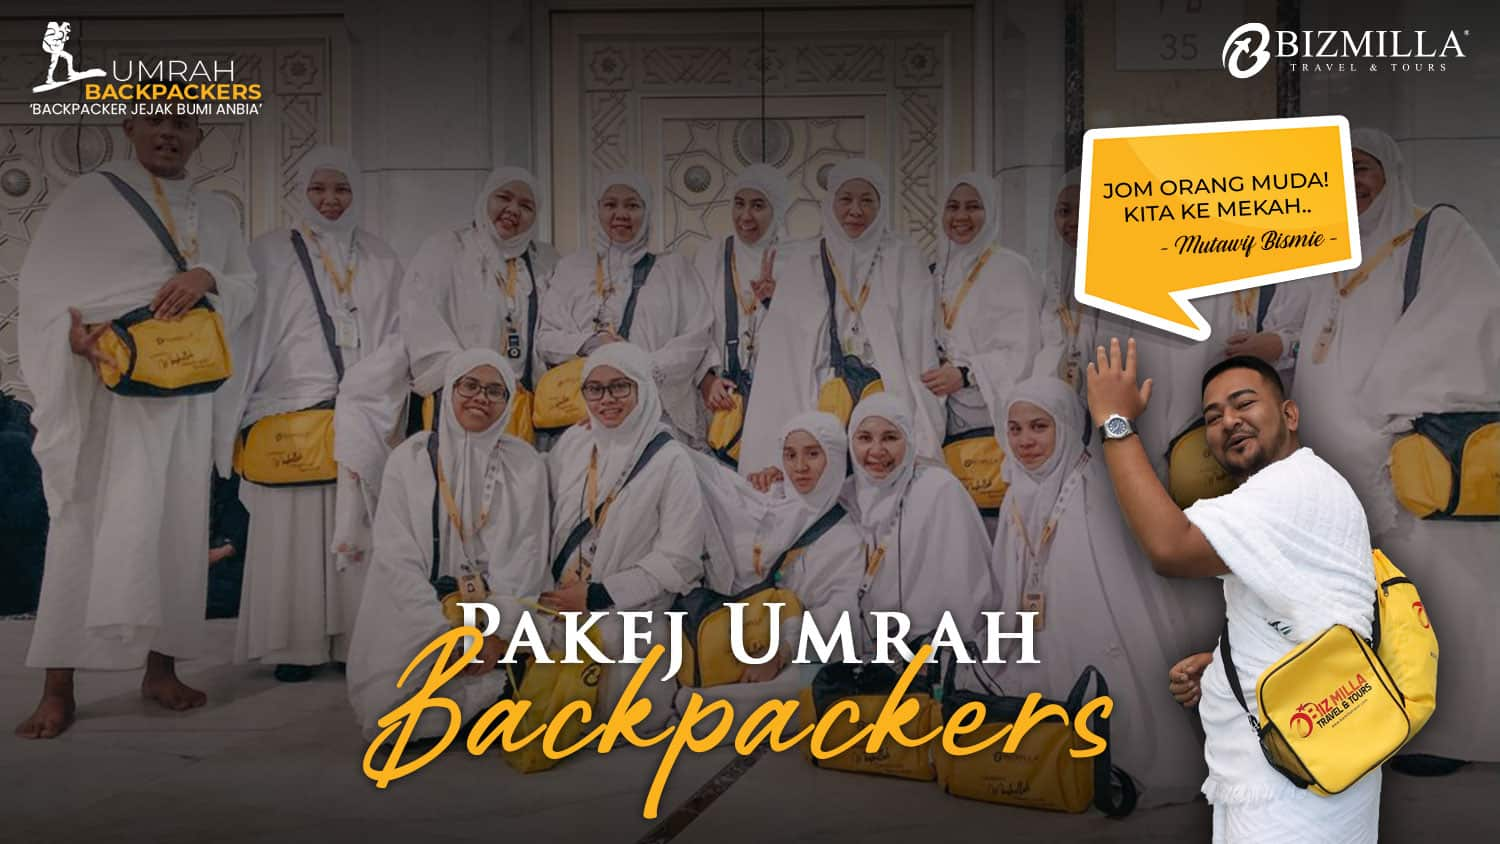 Umrah Backpackers